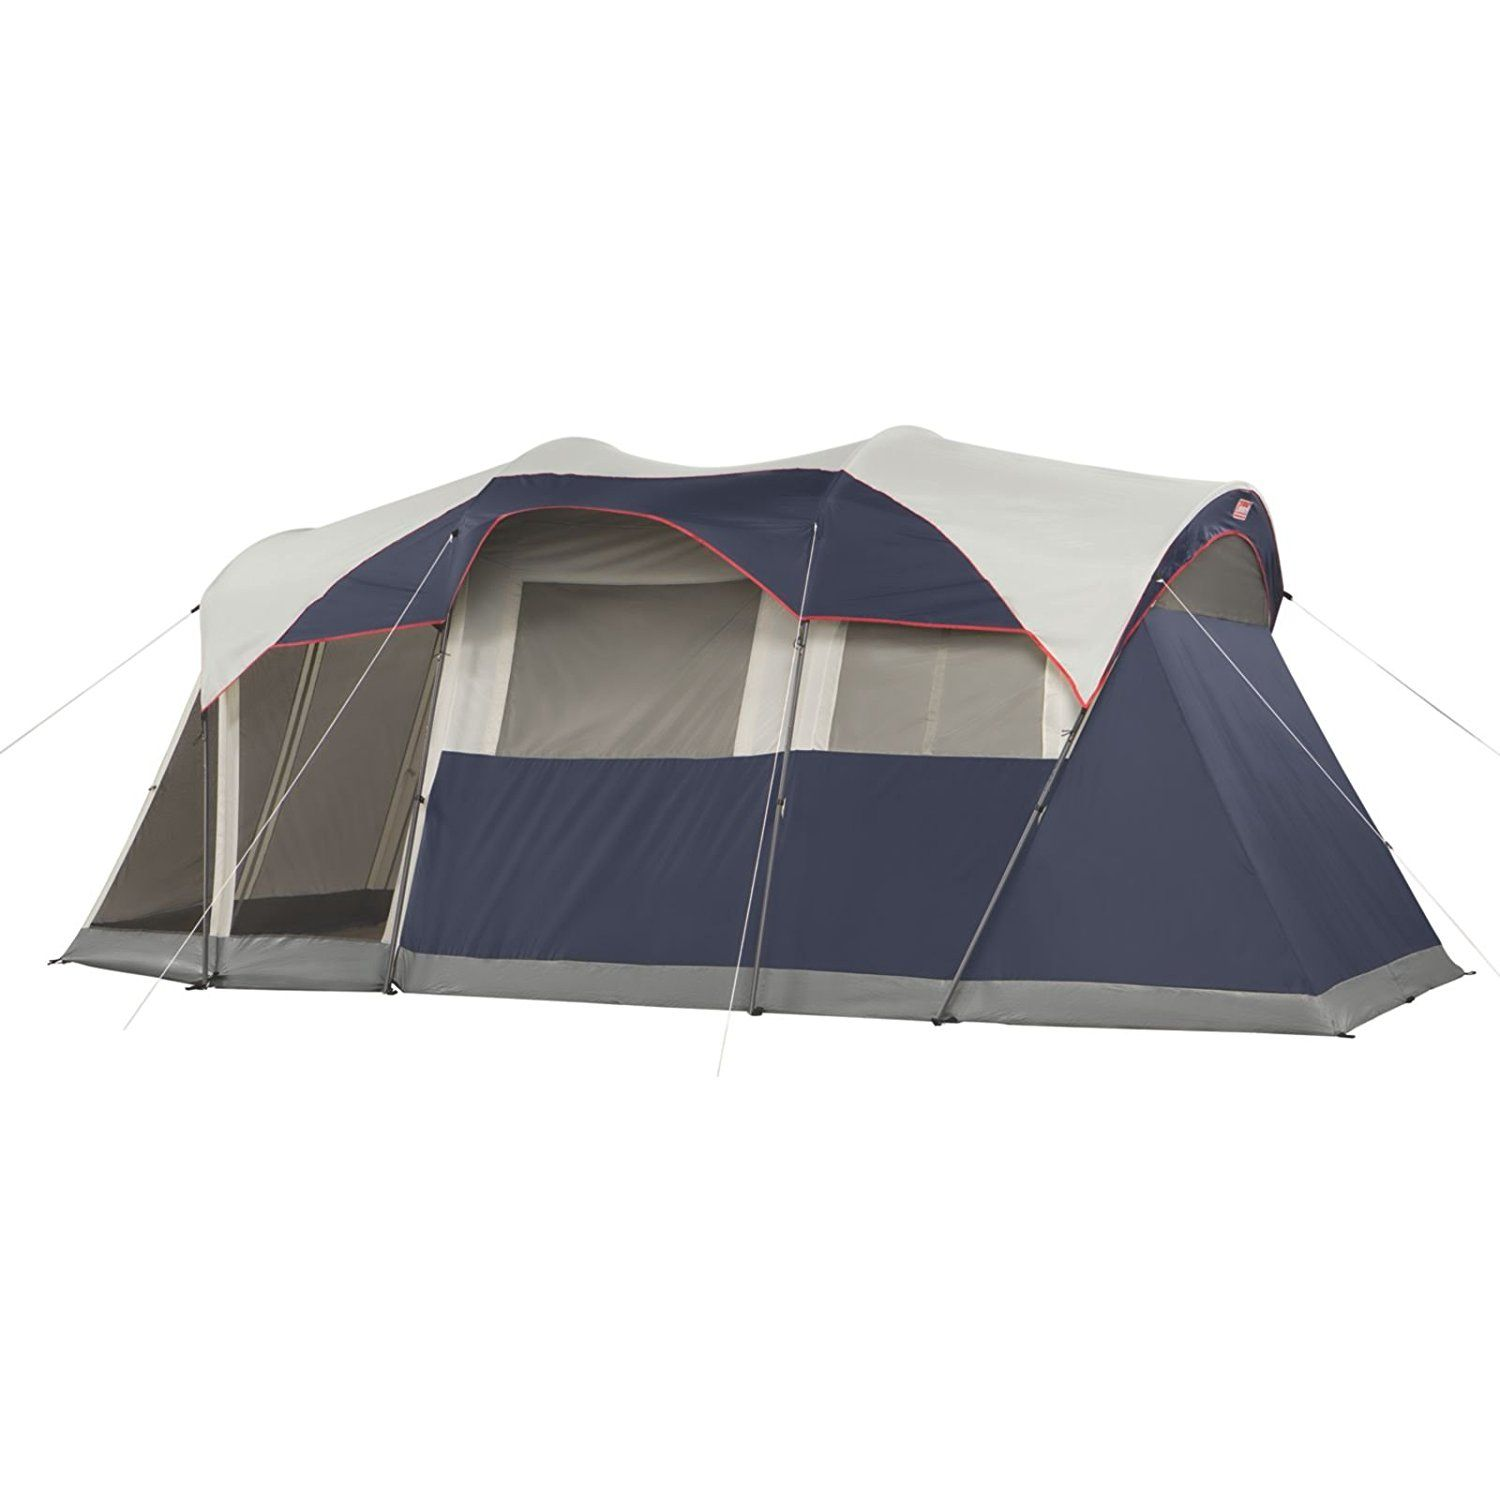 Top 10 Best Family Cabin Tent for C&ing Outdoors I Best Ten Reviews  sc 1 st  Pinterest & Top 10 Best Family Cabin Tent for Camping Outdoors I Best Ten ...